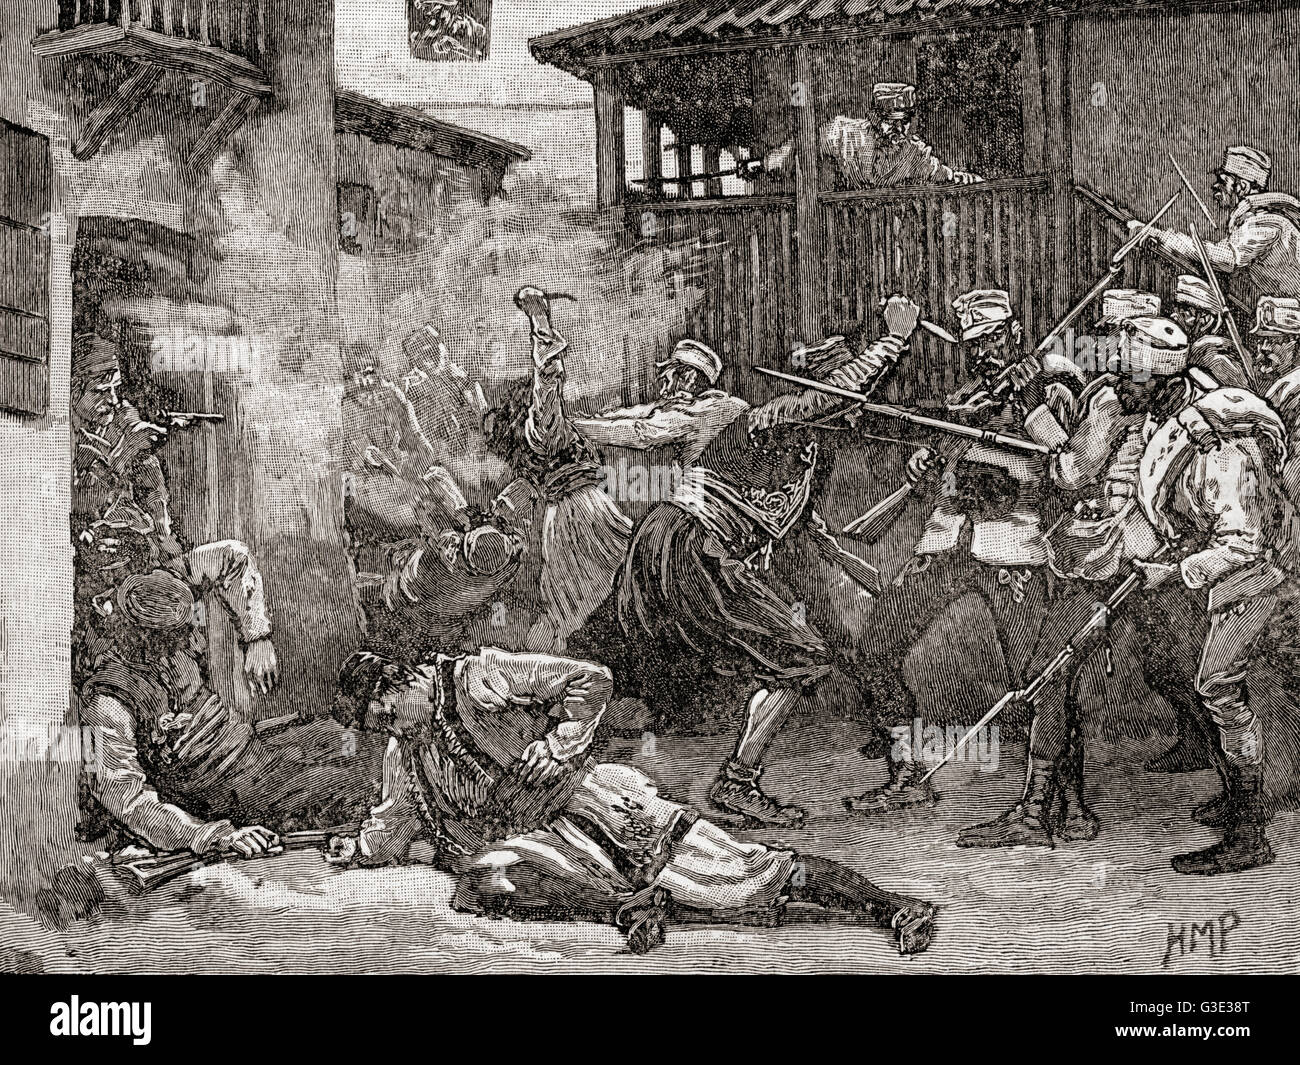 Street battle in Sarajevo, 1878, between the Austro-Hungarian army and the Ottoman supported local resistance. Occupation - Stock Image